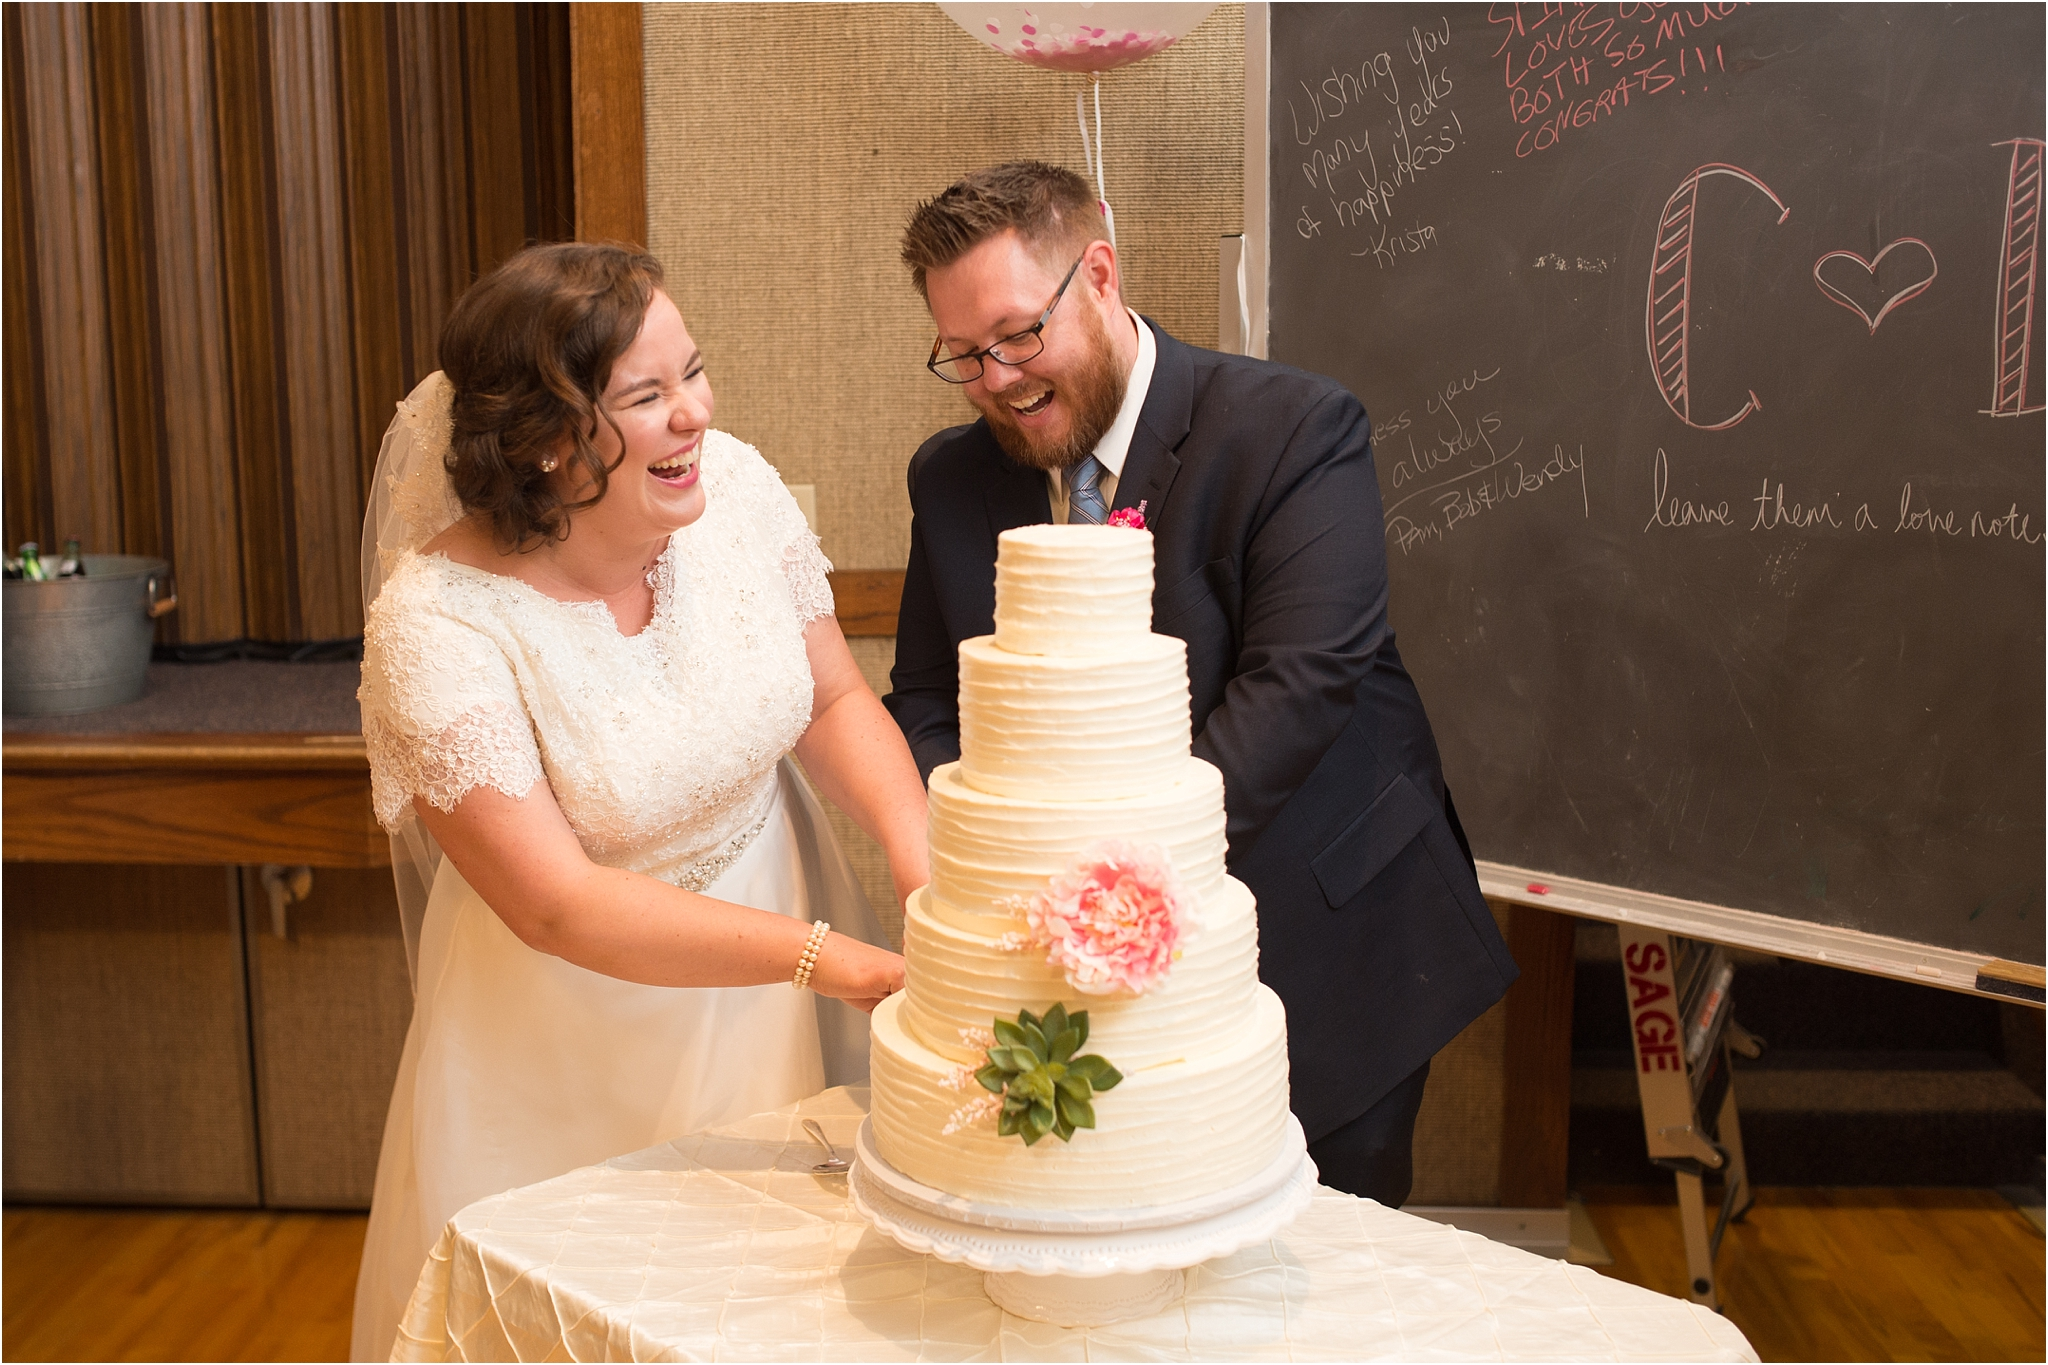 kayla kitts photography - albuquerque wedding photographer - hairpins and scissors - a cake odyssey - new mexico wedding photographer_0138.jpg